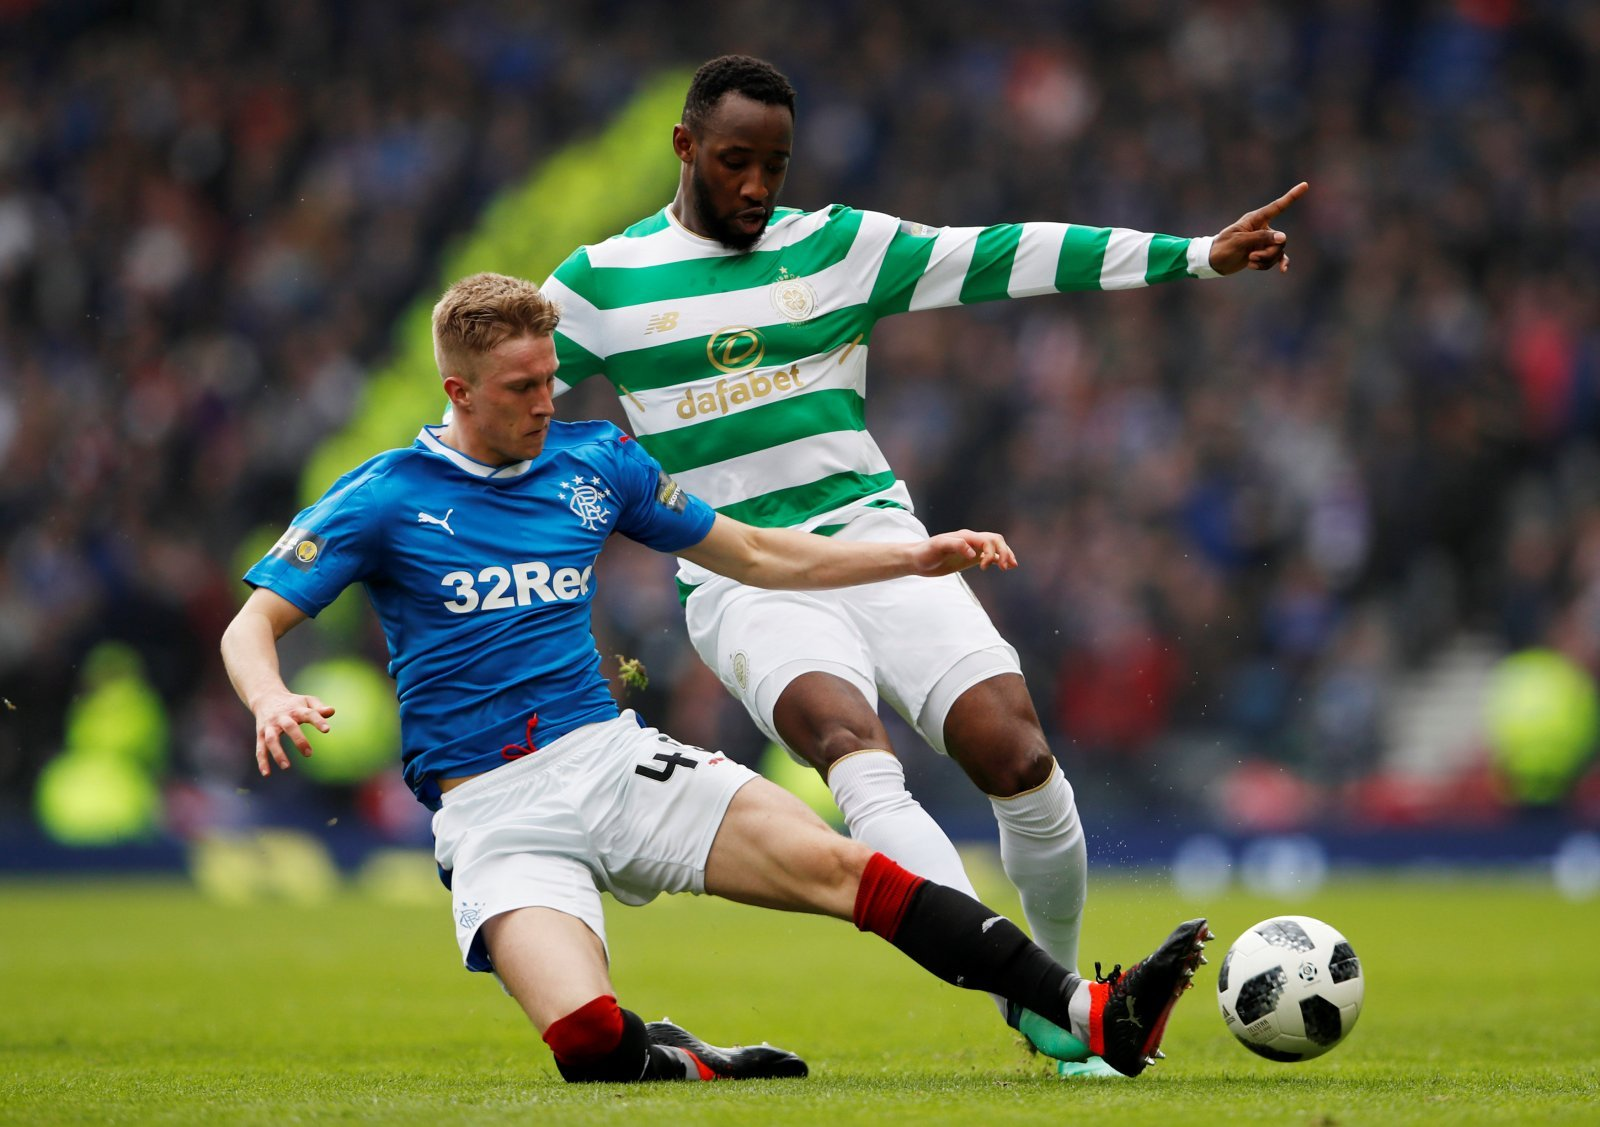 Rangers fans on Twitter laud Ross McCrorie despite Hibernian's disappointment